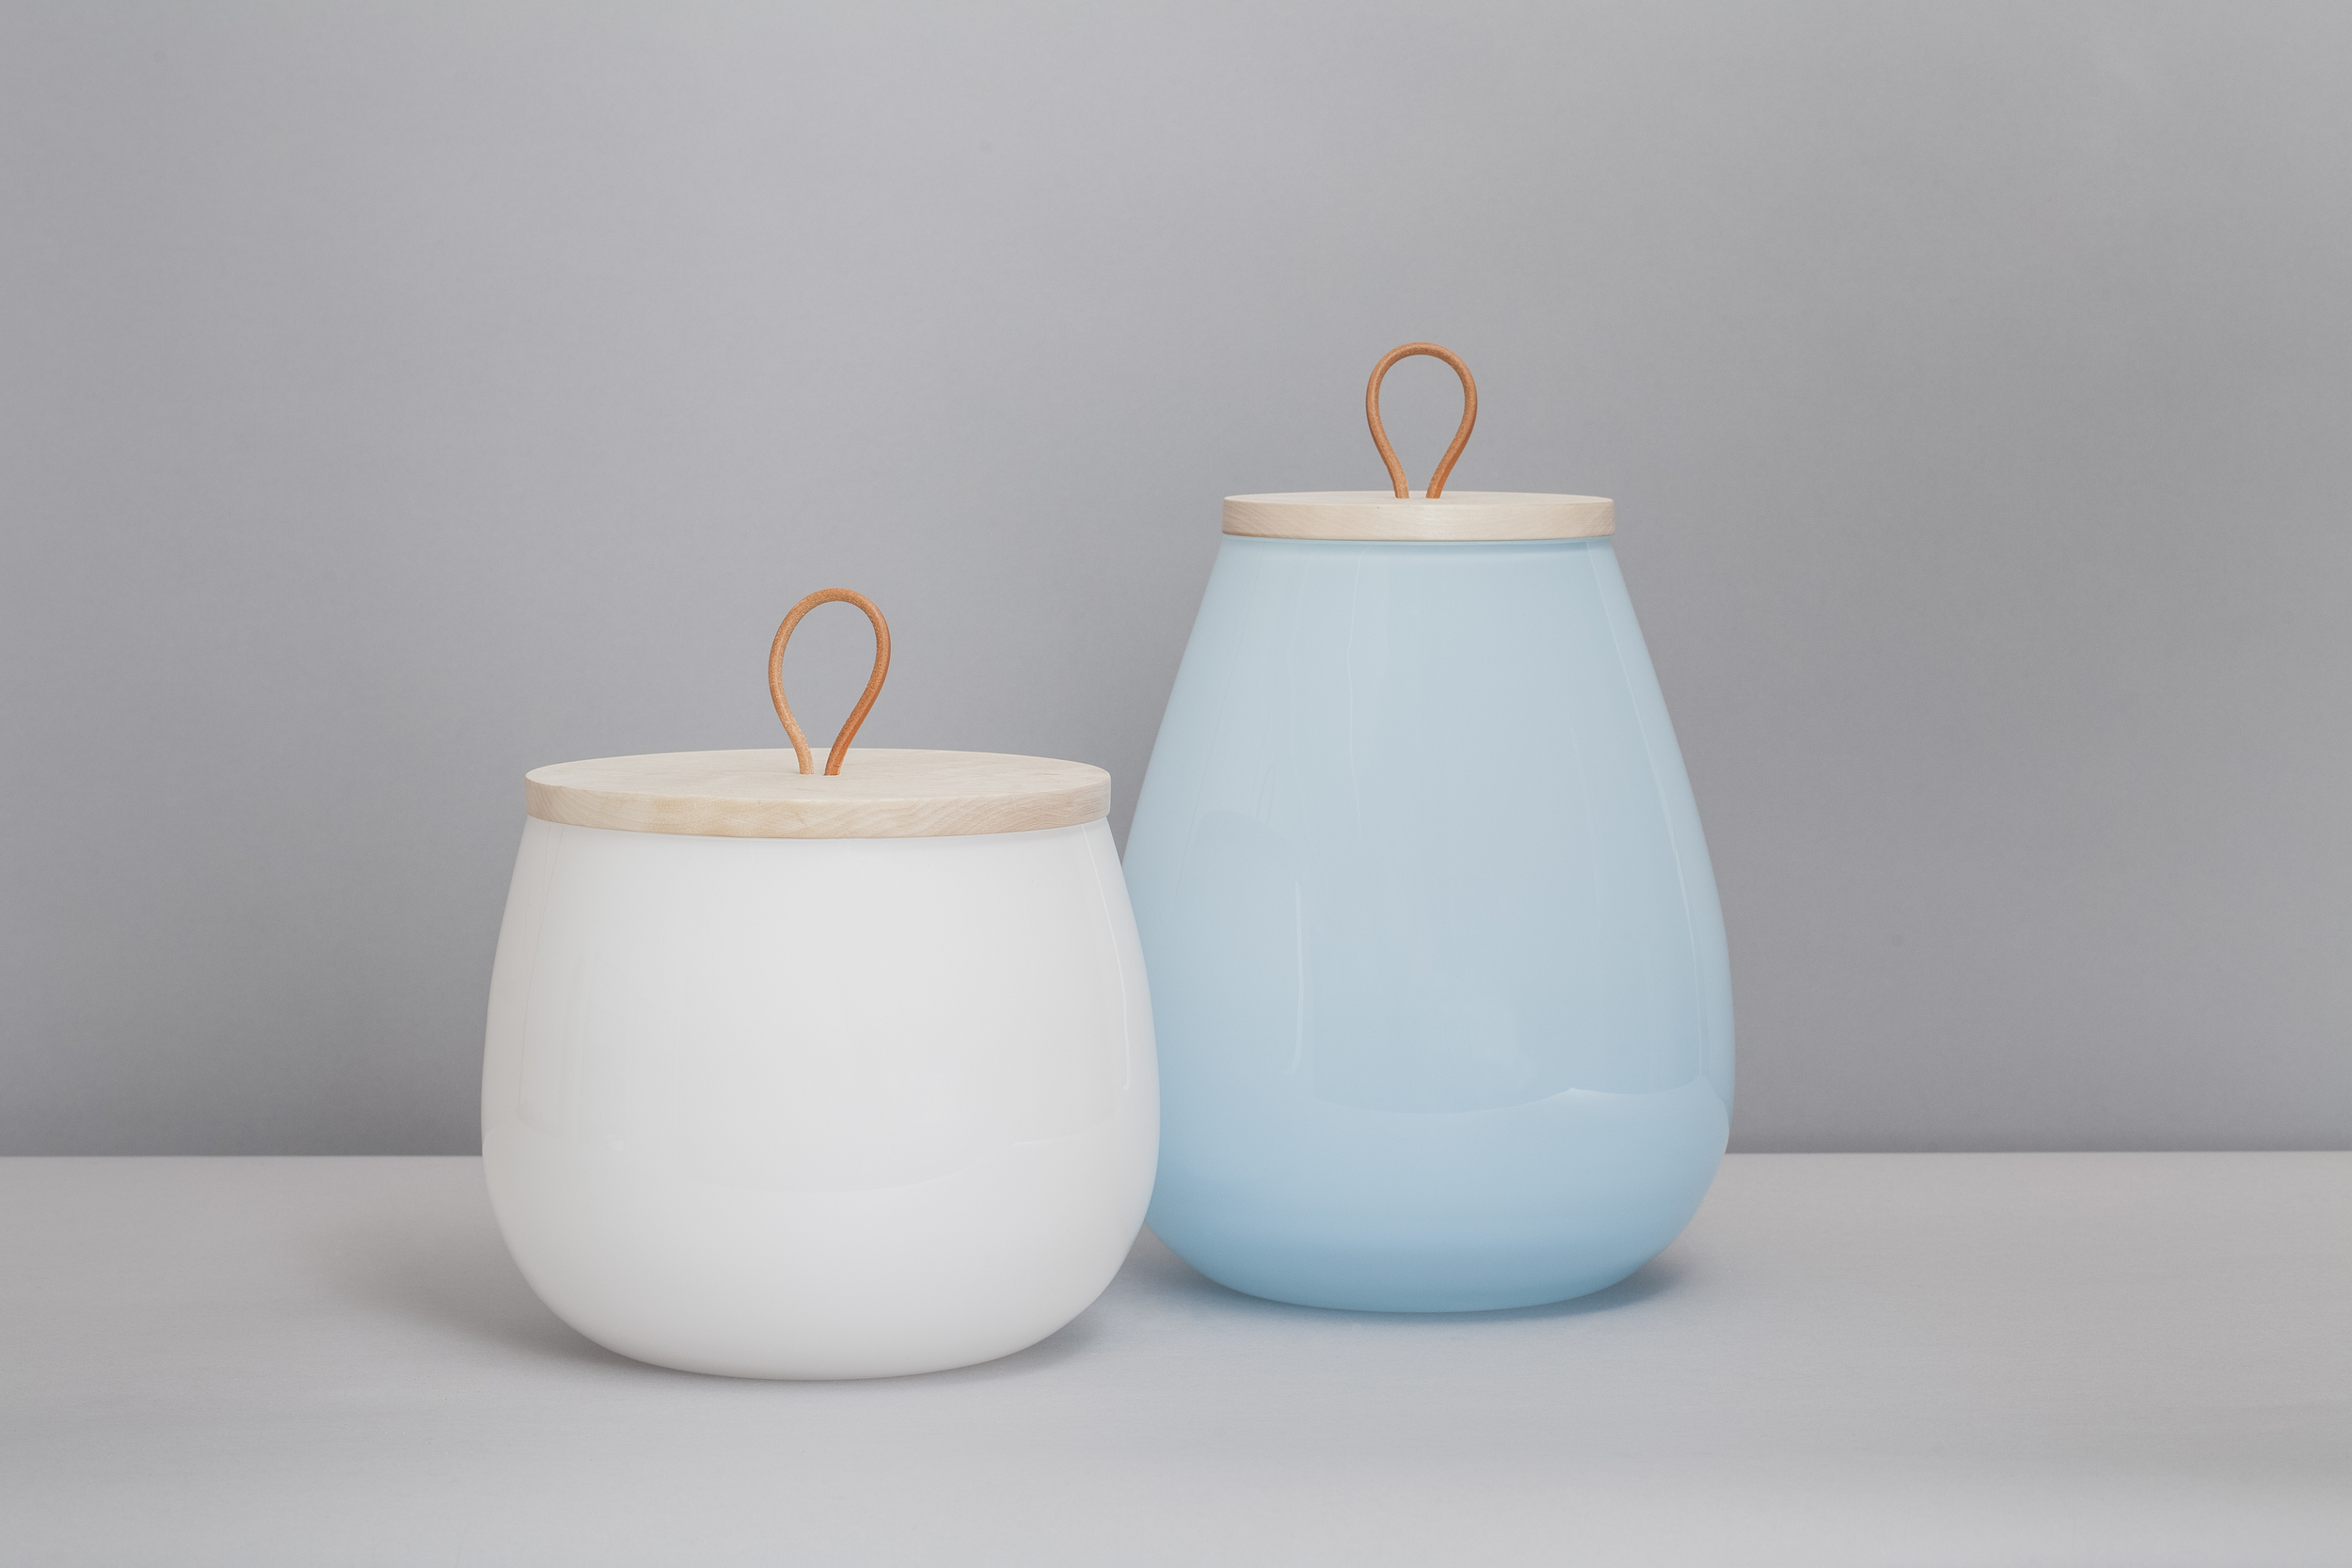 Dew (left) and Else (right) vases.